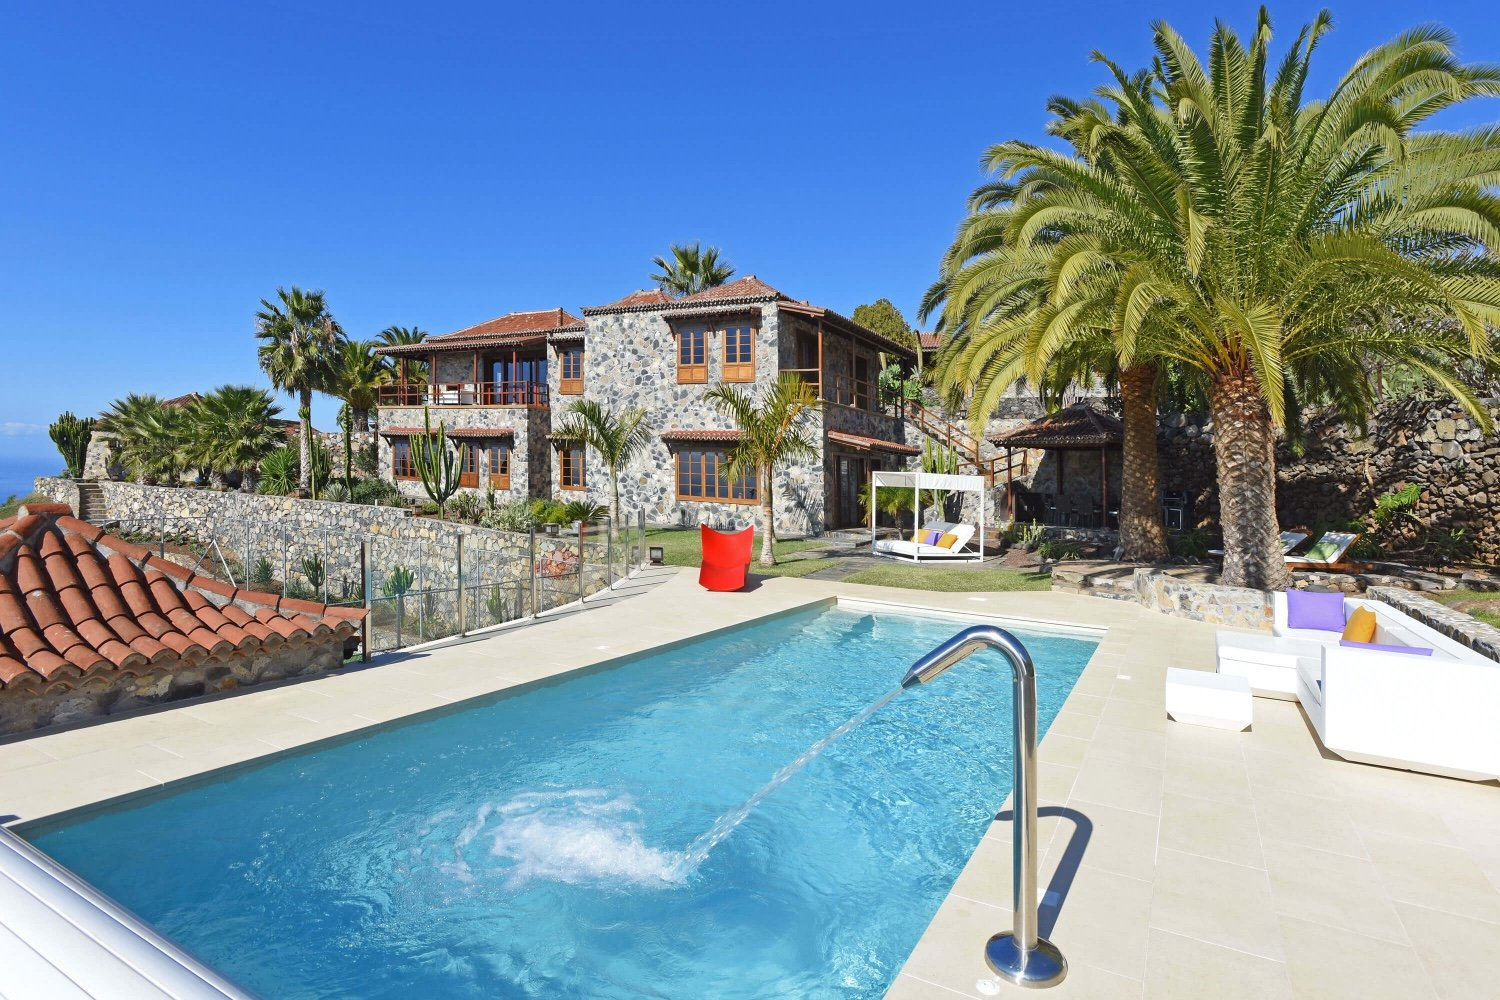 Luxurious mansion with a beautiful pool area, magnifice gardens and fantastic views to the sea and mountains